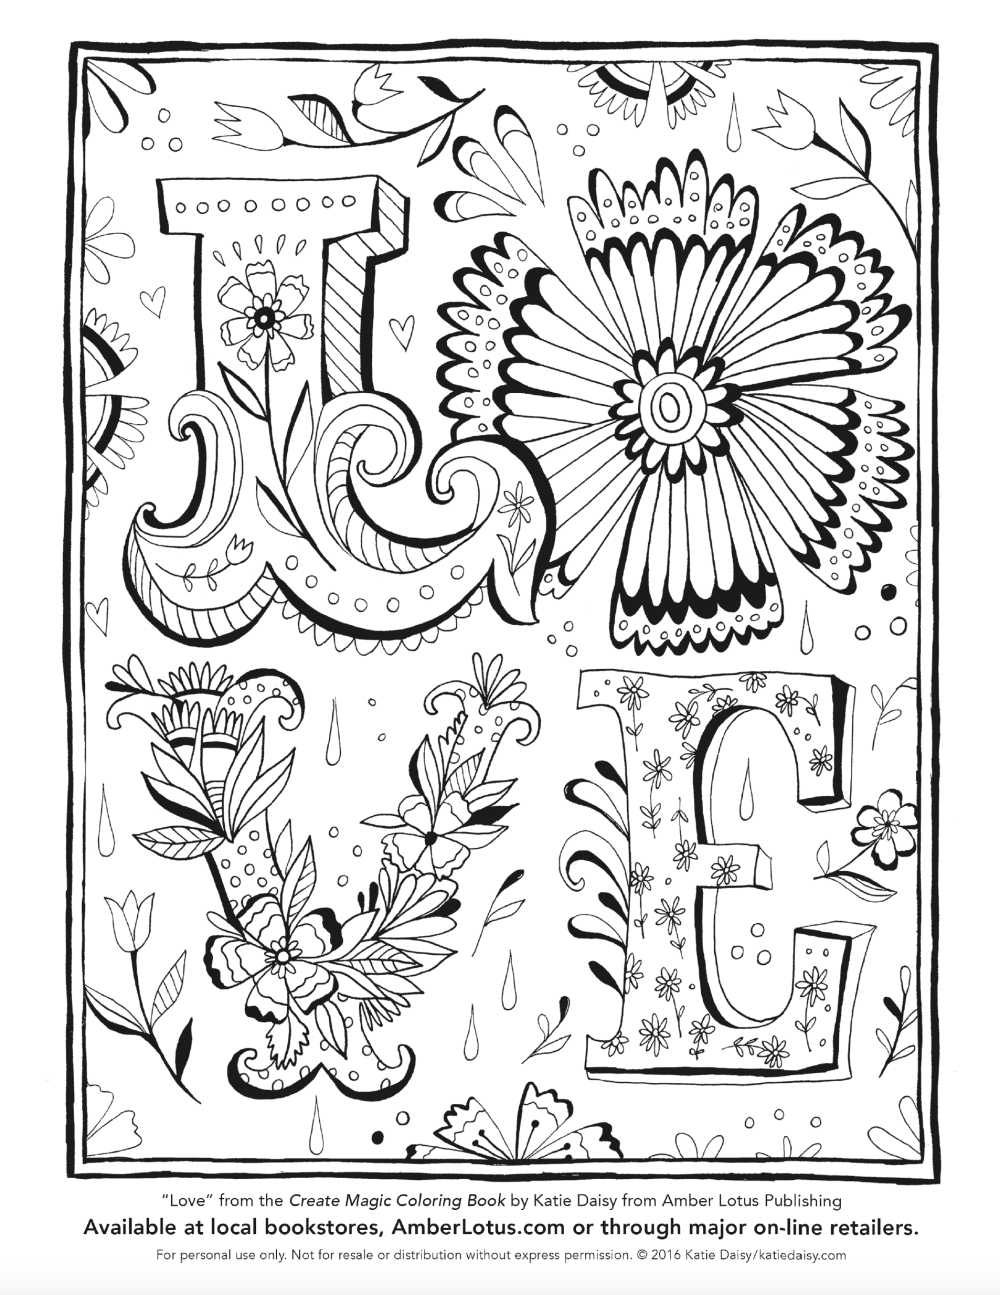 Love Coloring Page By Katie Daisy From The Create Magic Coloring Book Love Coloring Pages Coloring Books Bear Coloring Pages